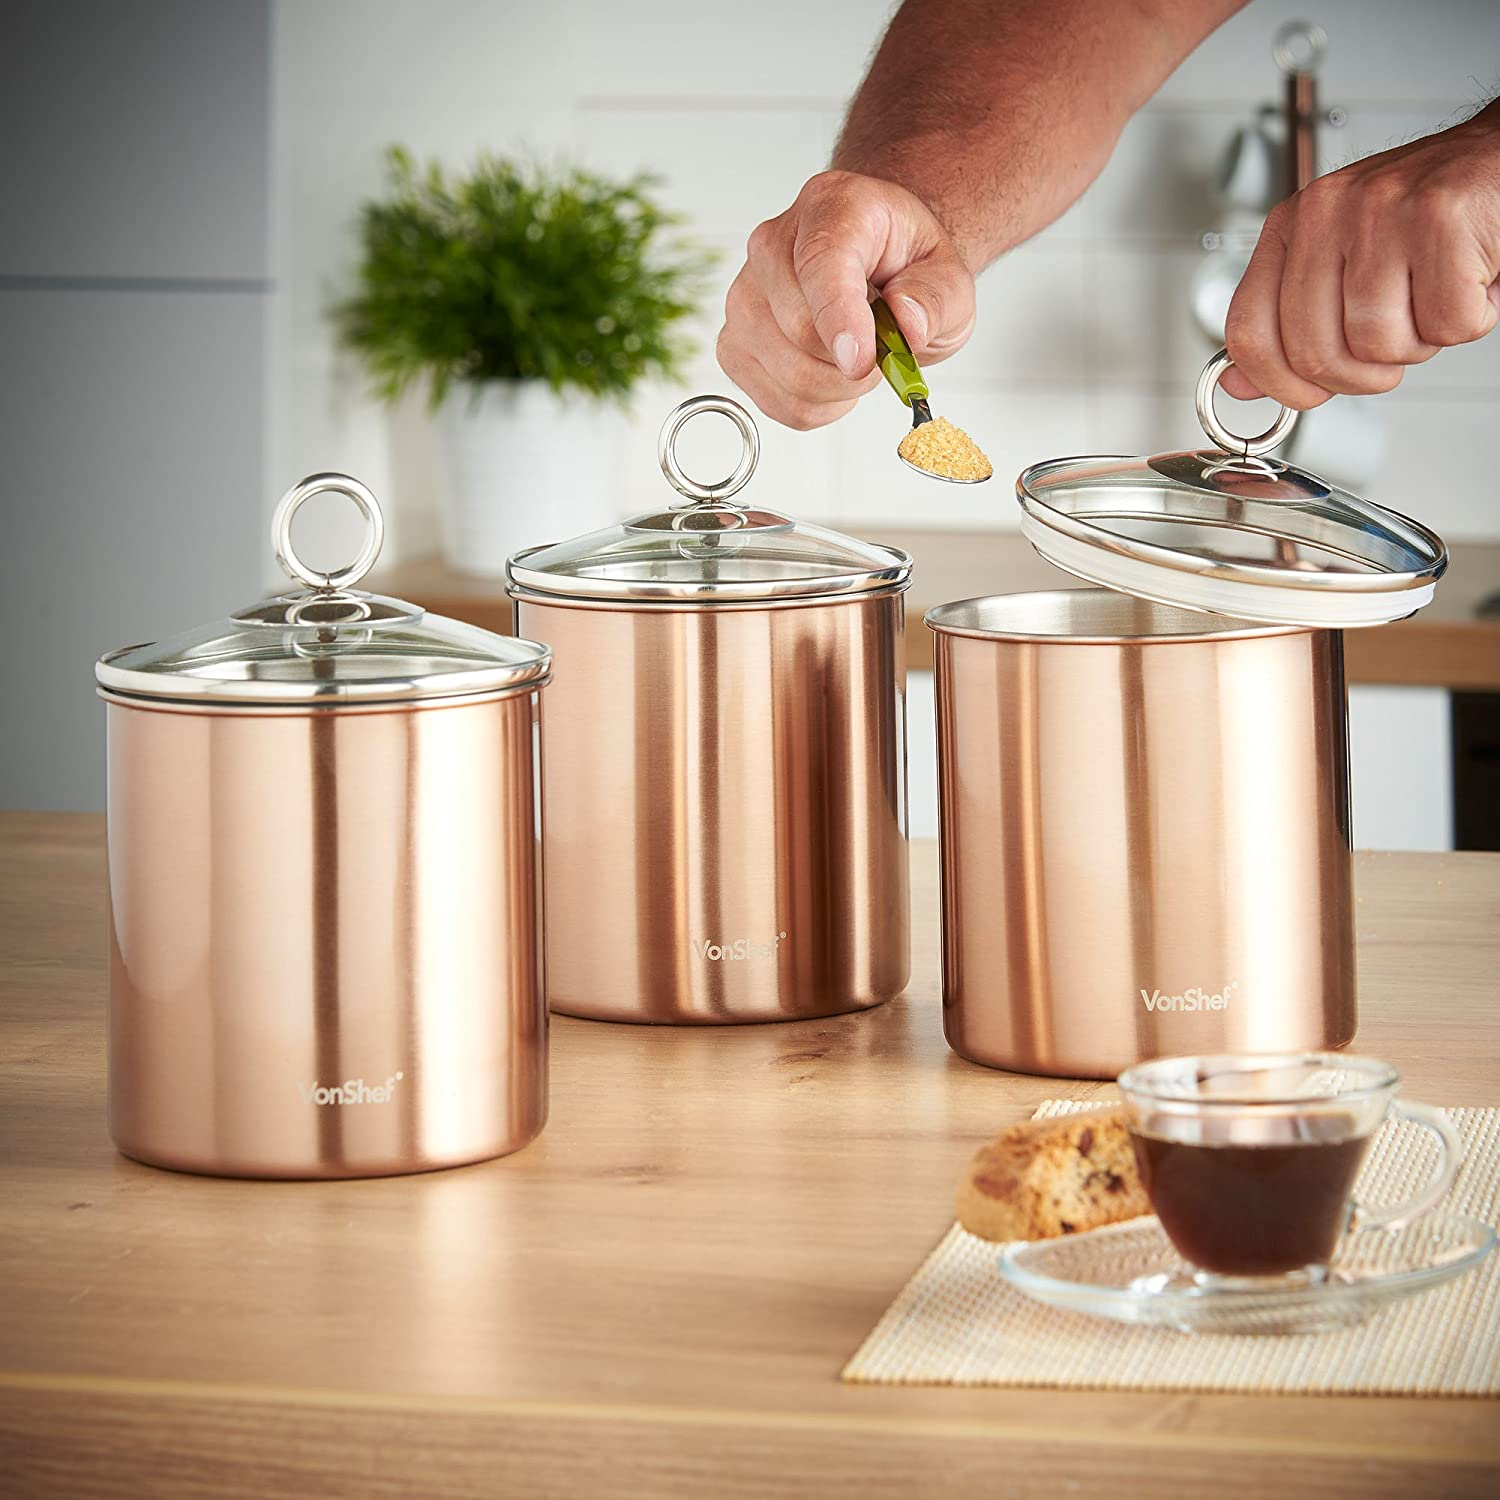 amazon com vonshef set of 3 copper tea coffee sugar canisters amazon com vonshef set of 3 copper tea coffee sugar canisters kitchen storage jars with glass lids stainless steel kitchen dining